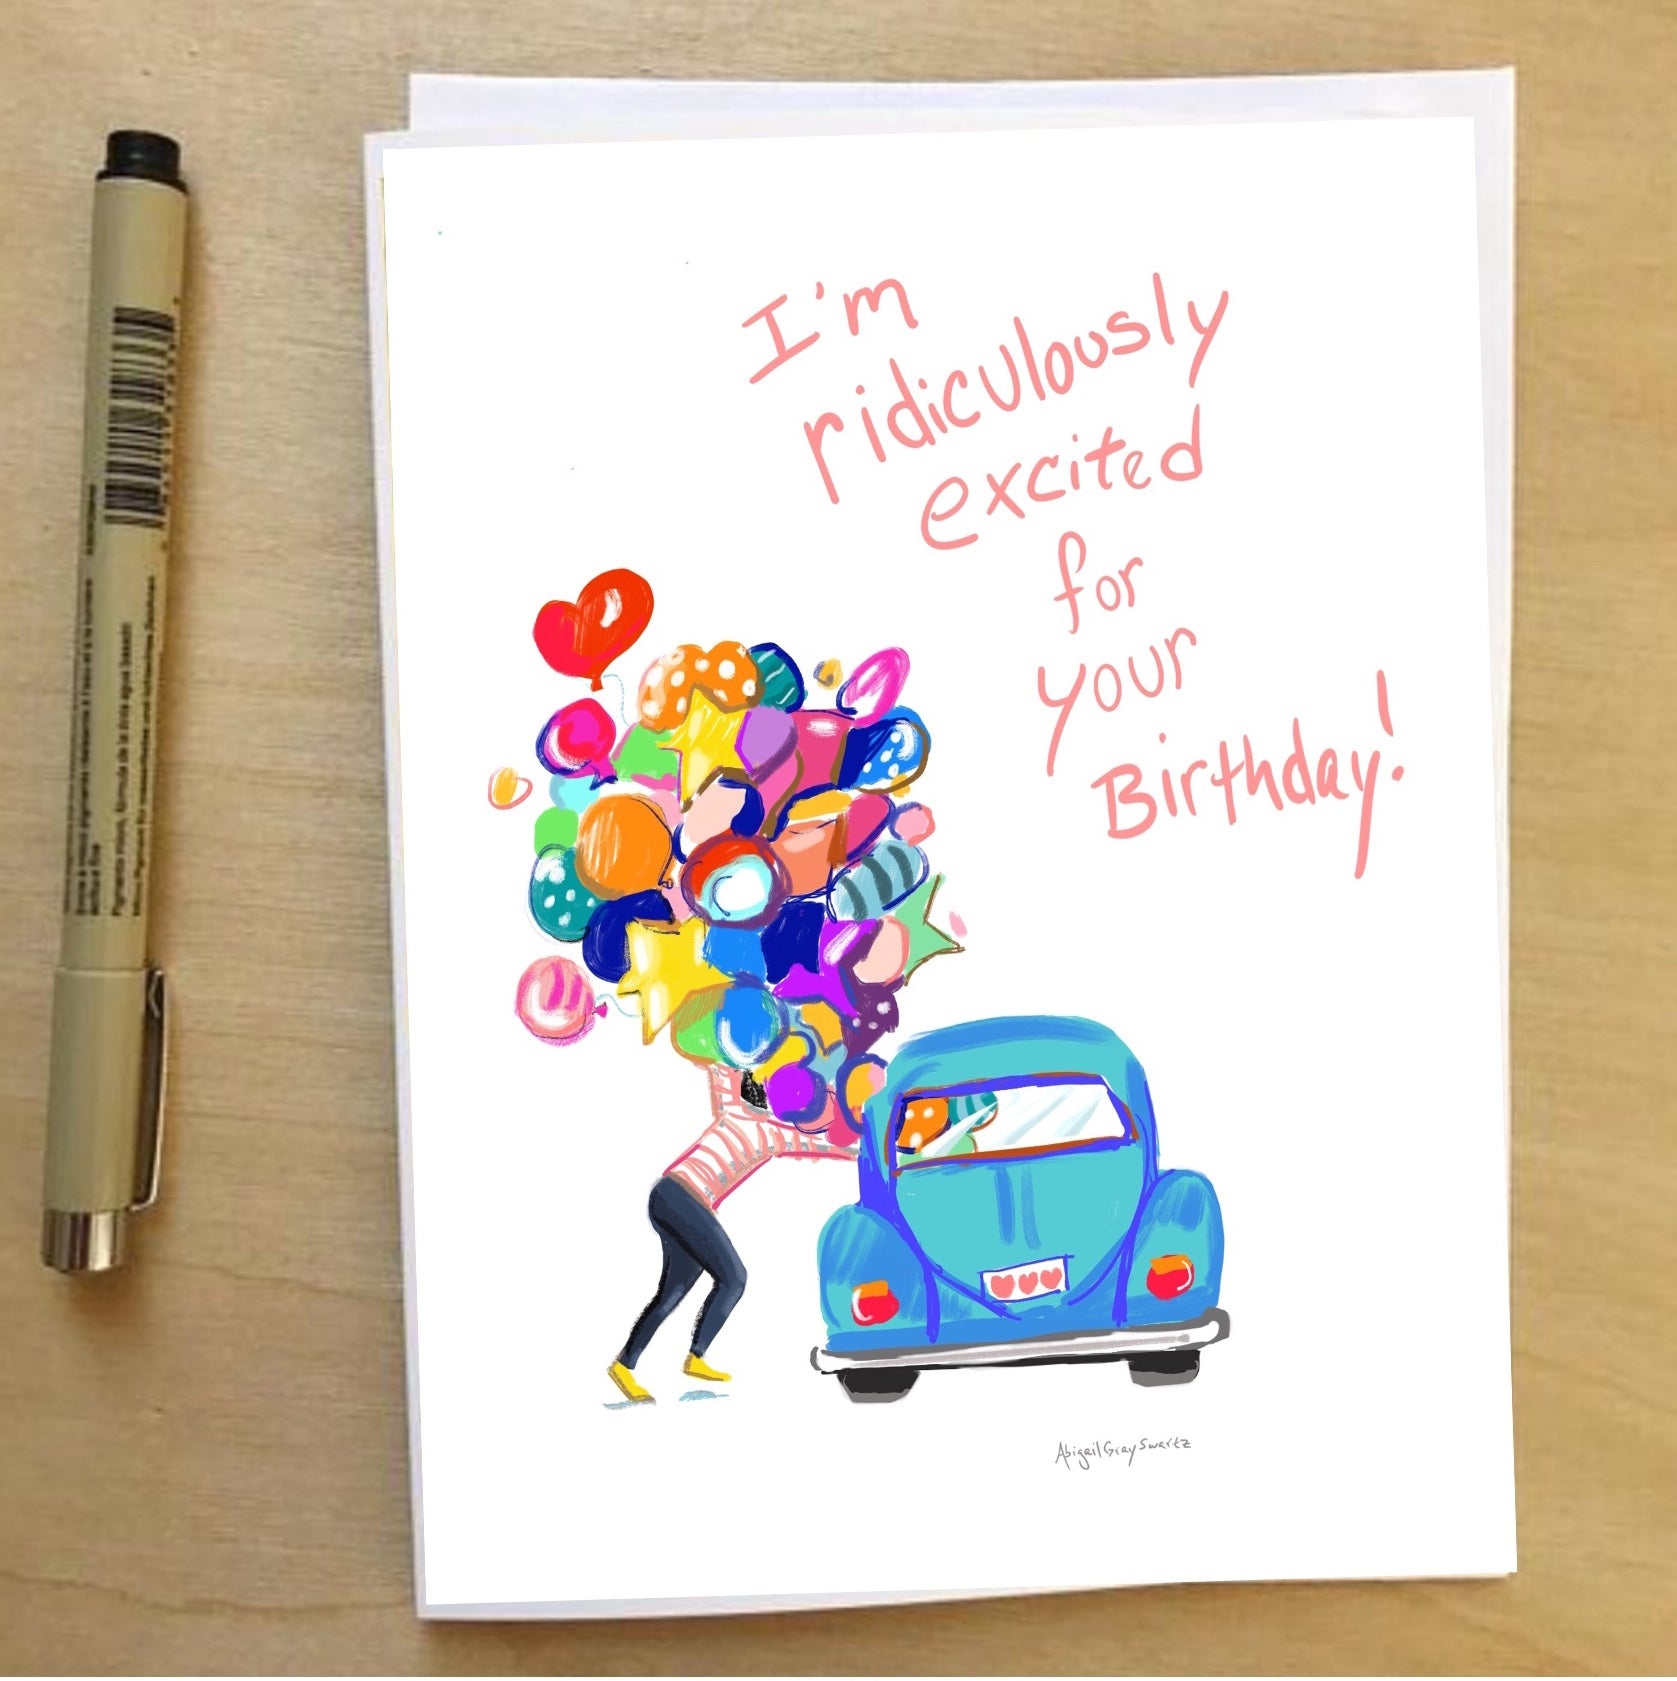 I'm ridiculously excited for your birthday --Greeting Card